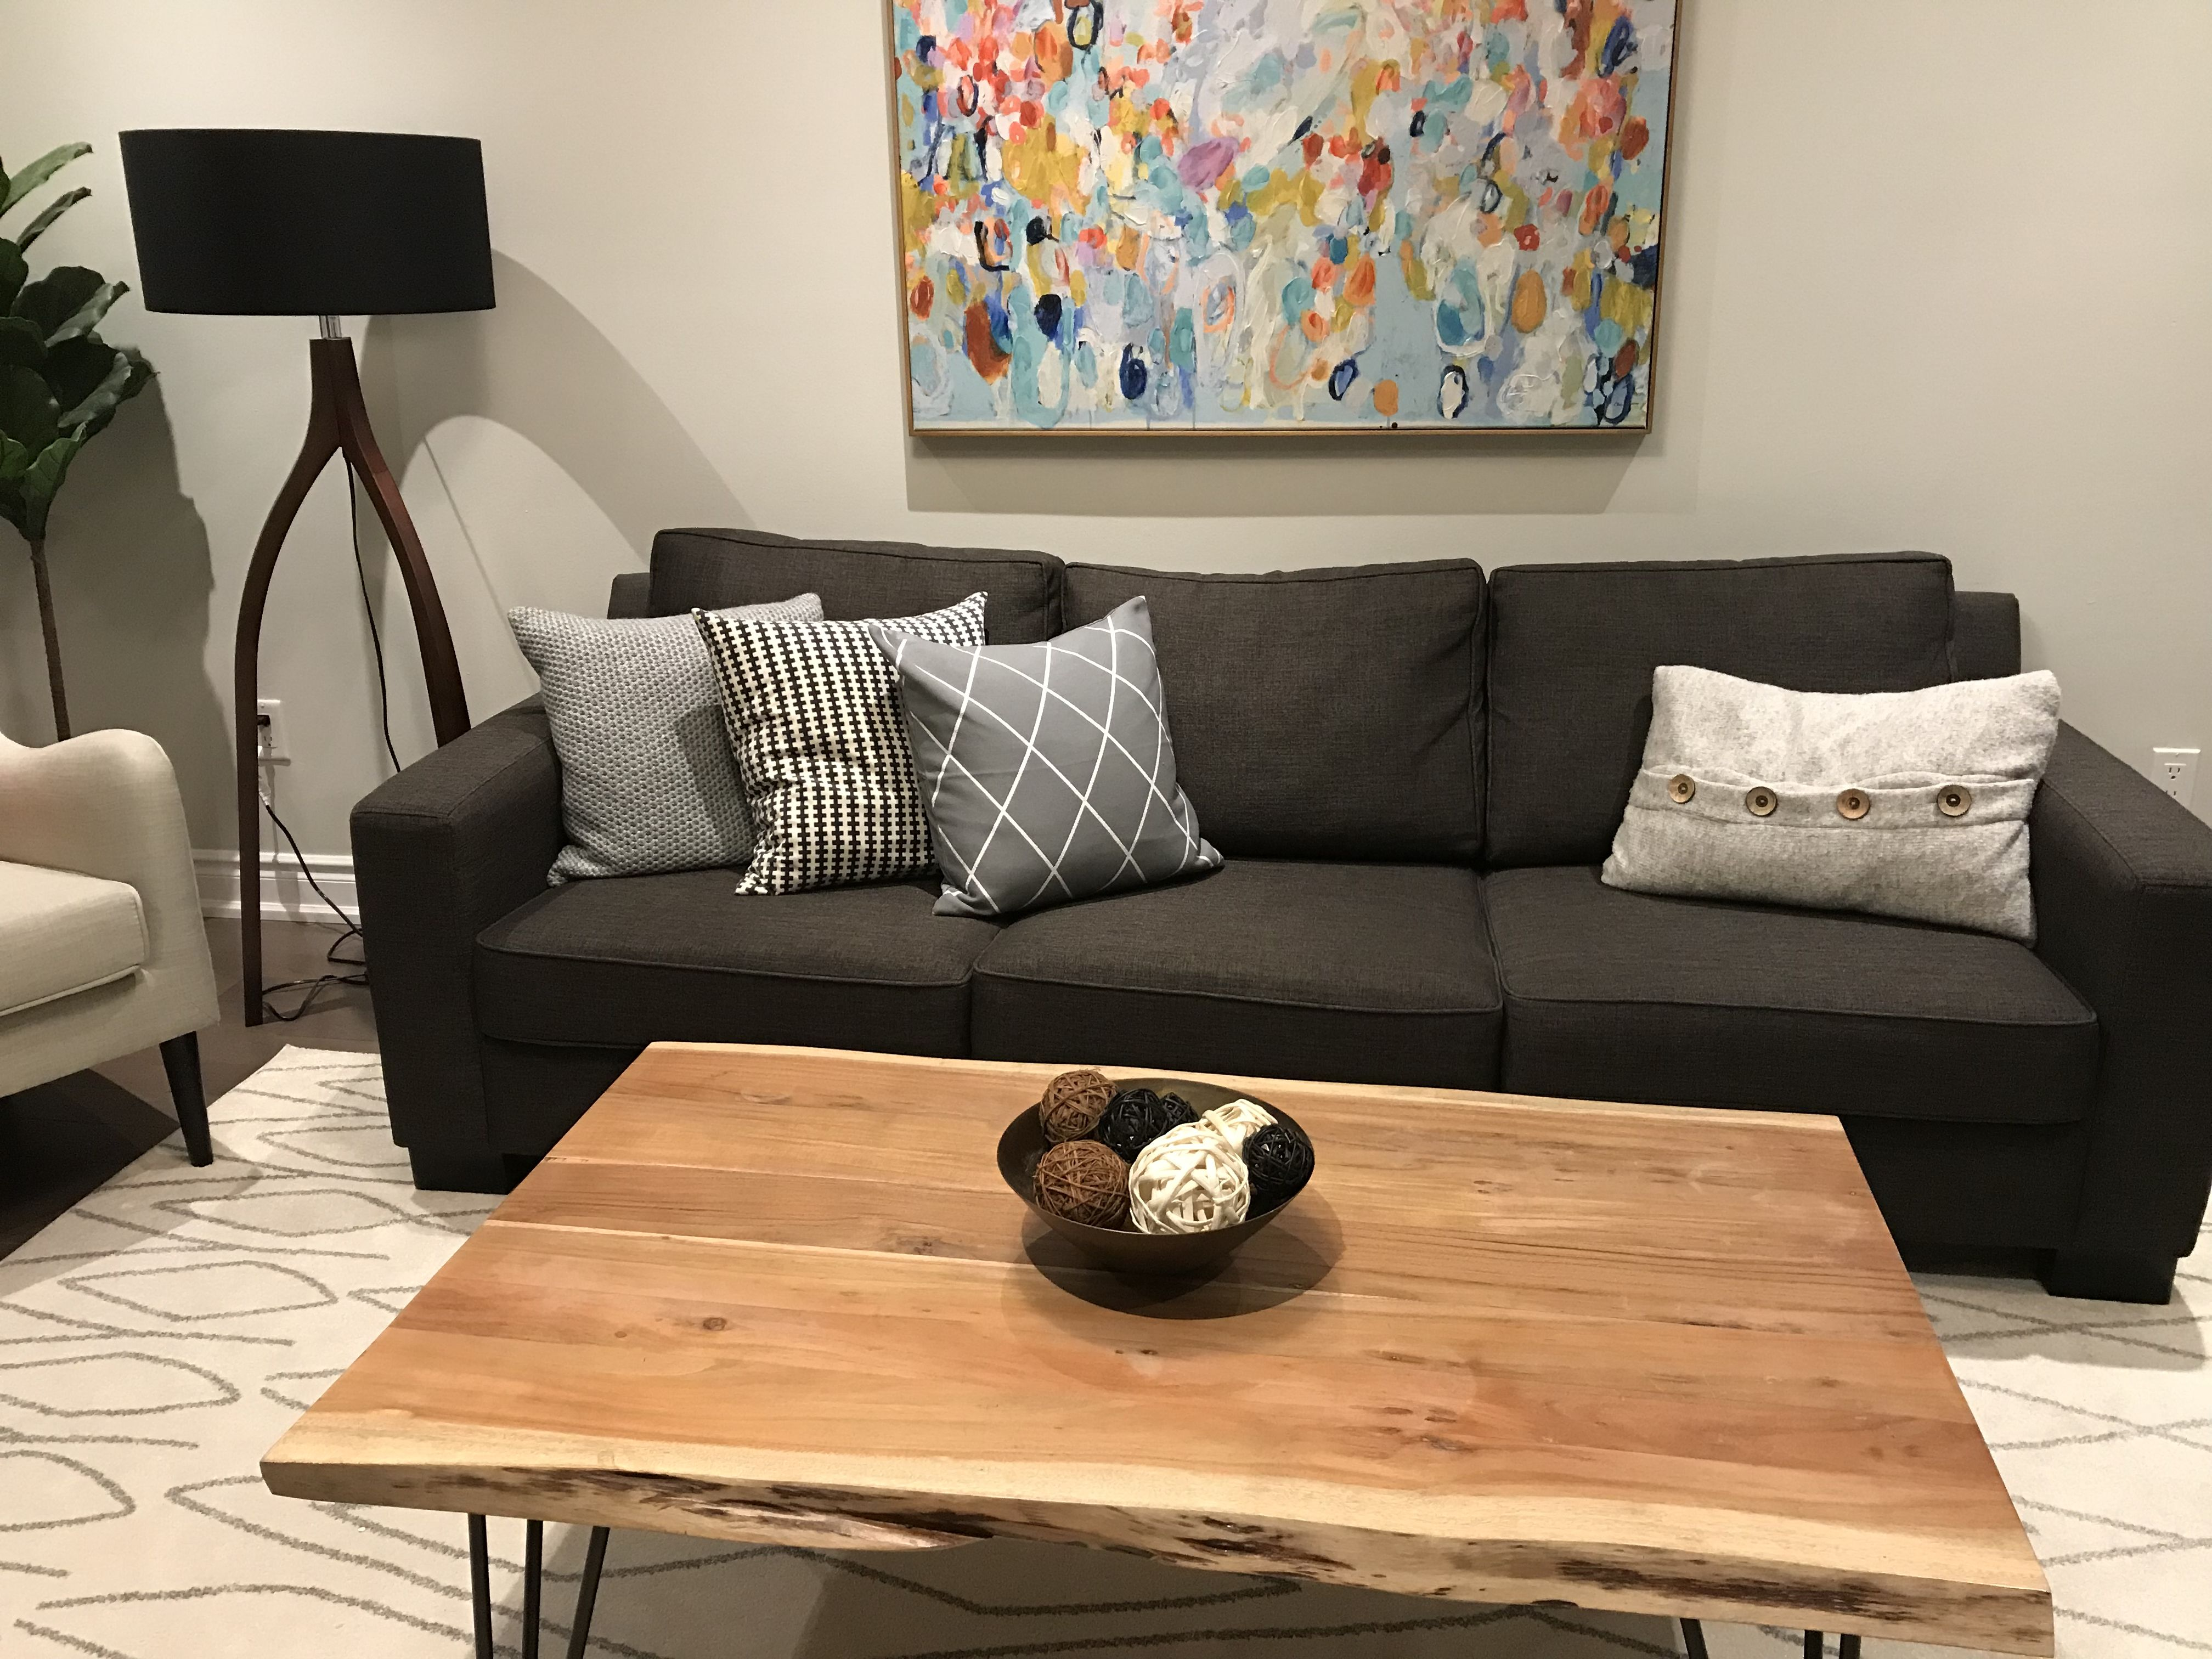 Grey On Grey With Structube Reno Reclaimed Wood Table Cushion Covers From H M Home Reclaimed Wood Table Furniture Coffee Table [ 3024 x 4032 Pixel ]